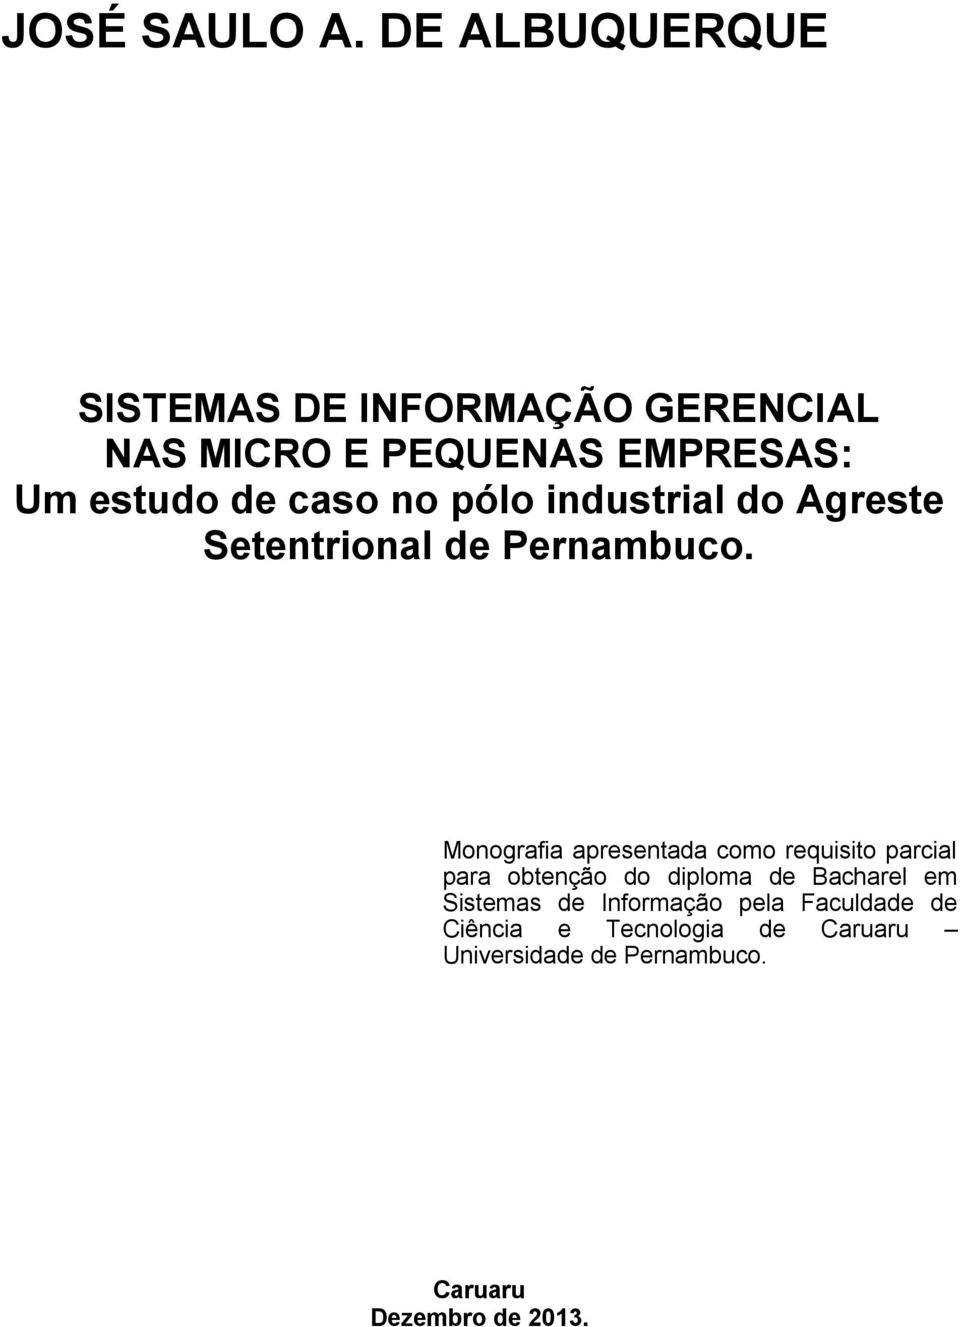 caso no pólo industrial do Agreste Setentrional de Pernambuco.